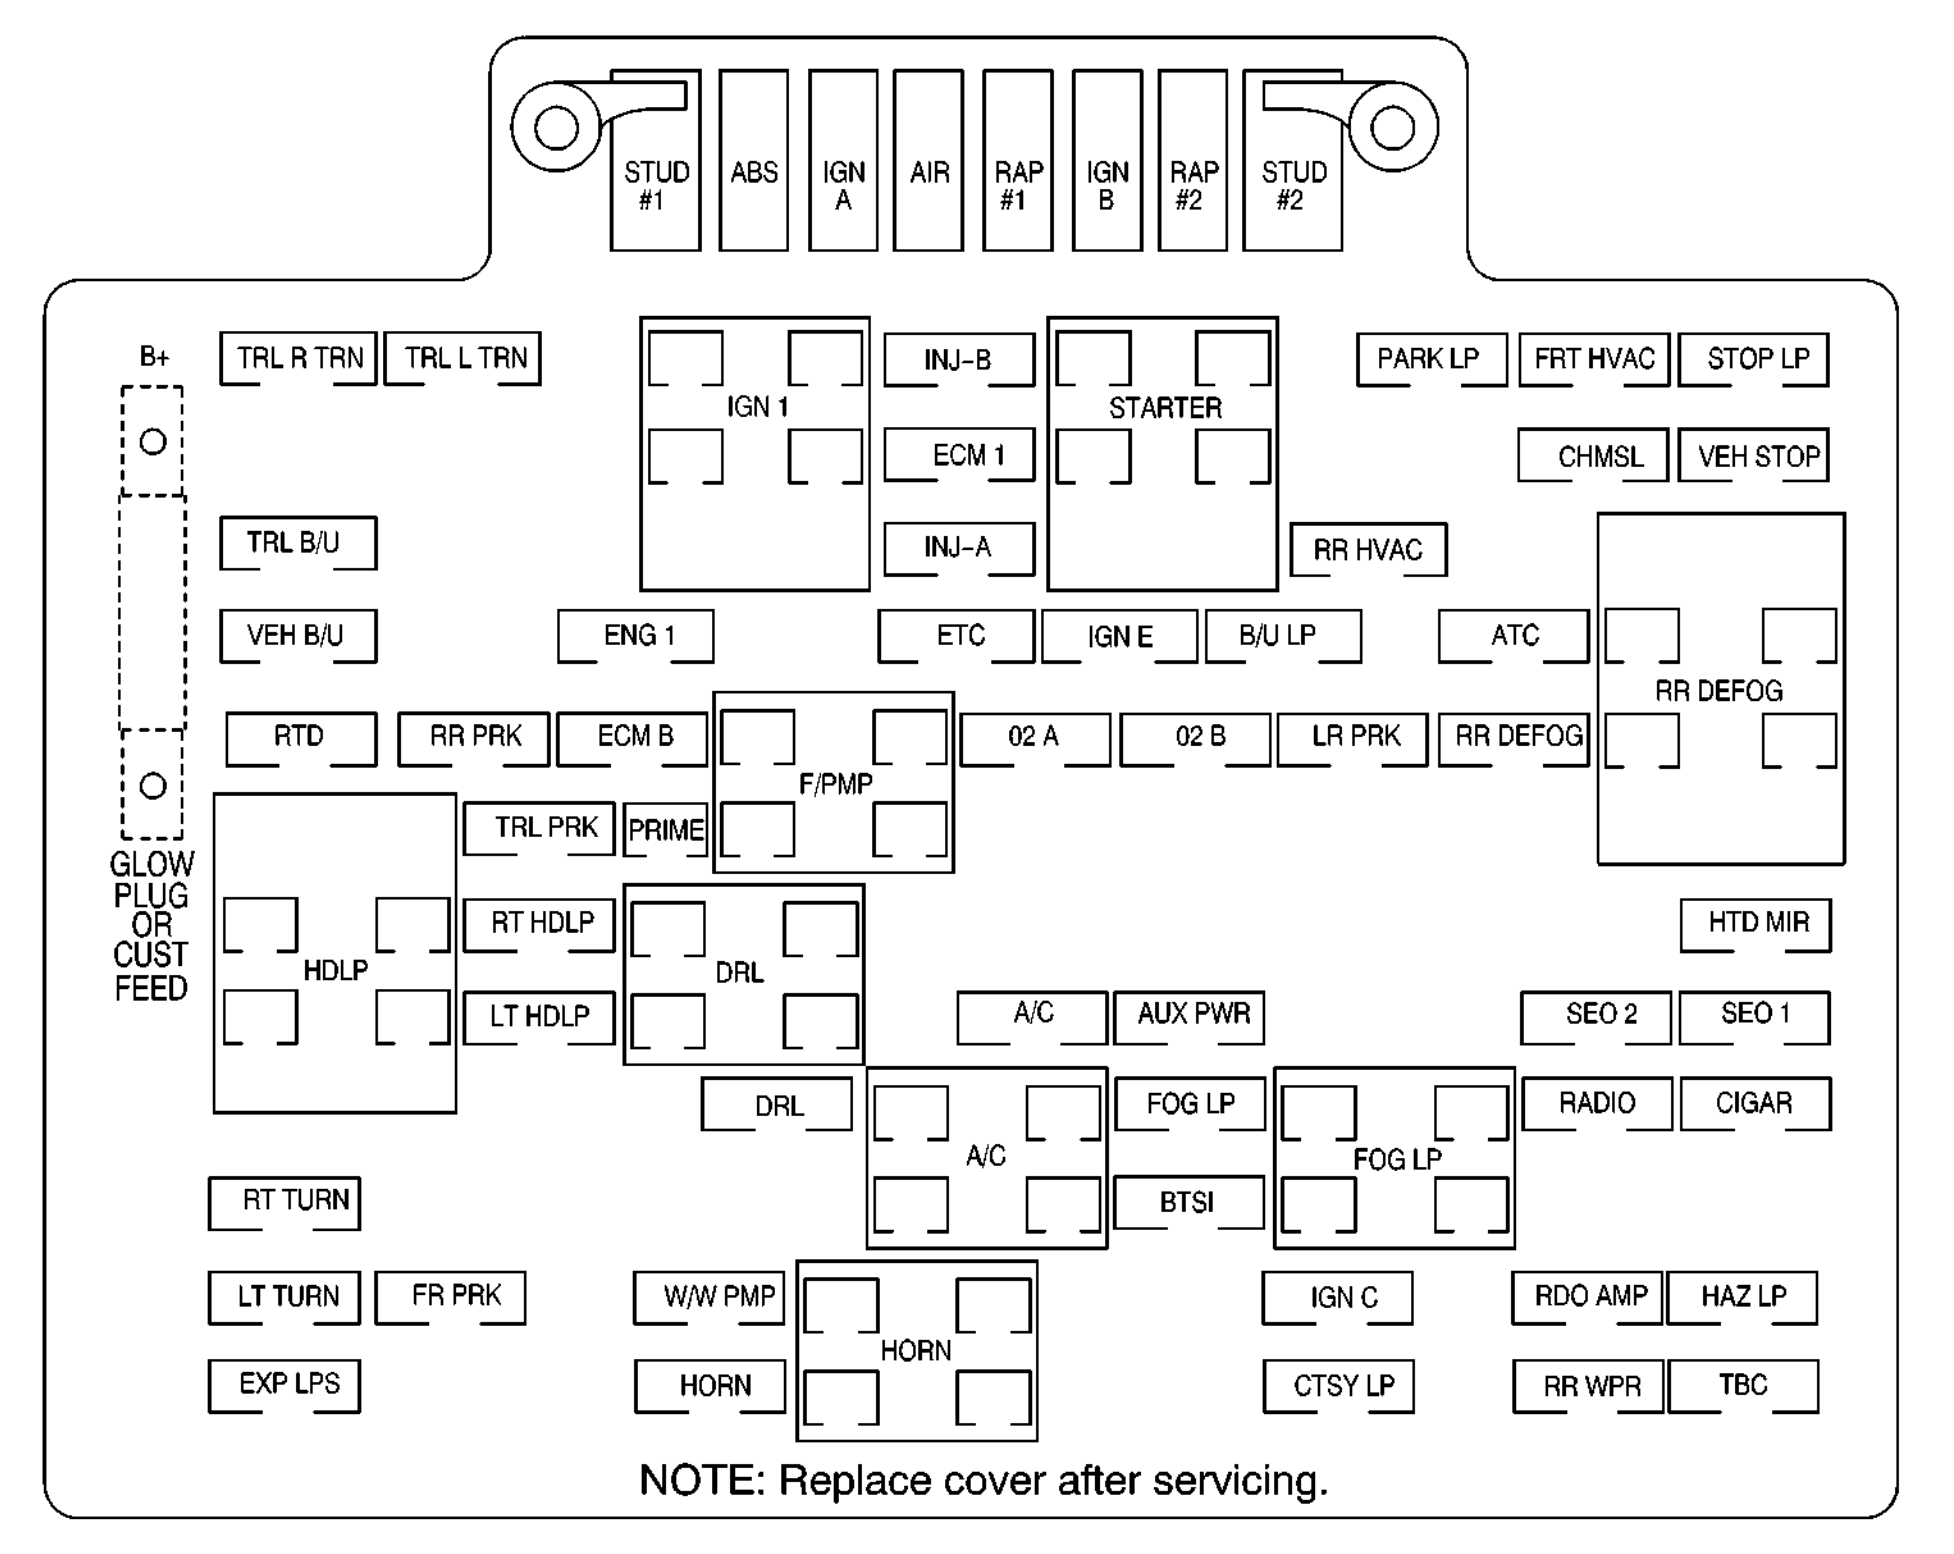 Chevrolet Tahoe 2001 Fuse Box Diagram Carknowledge